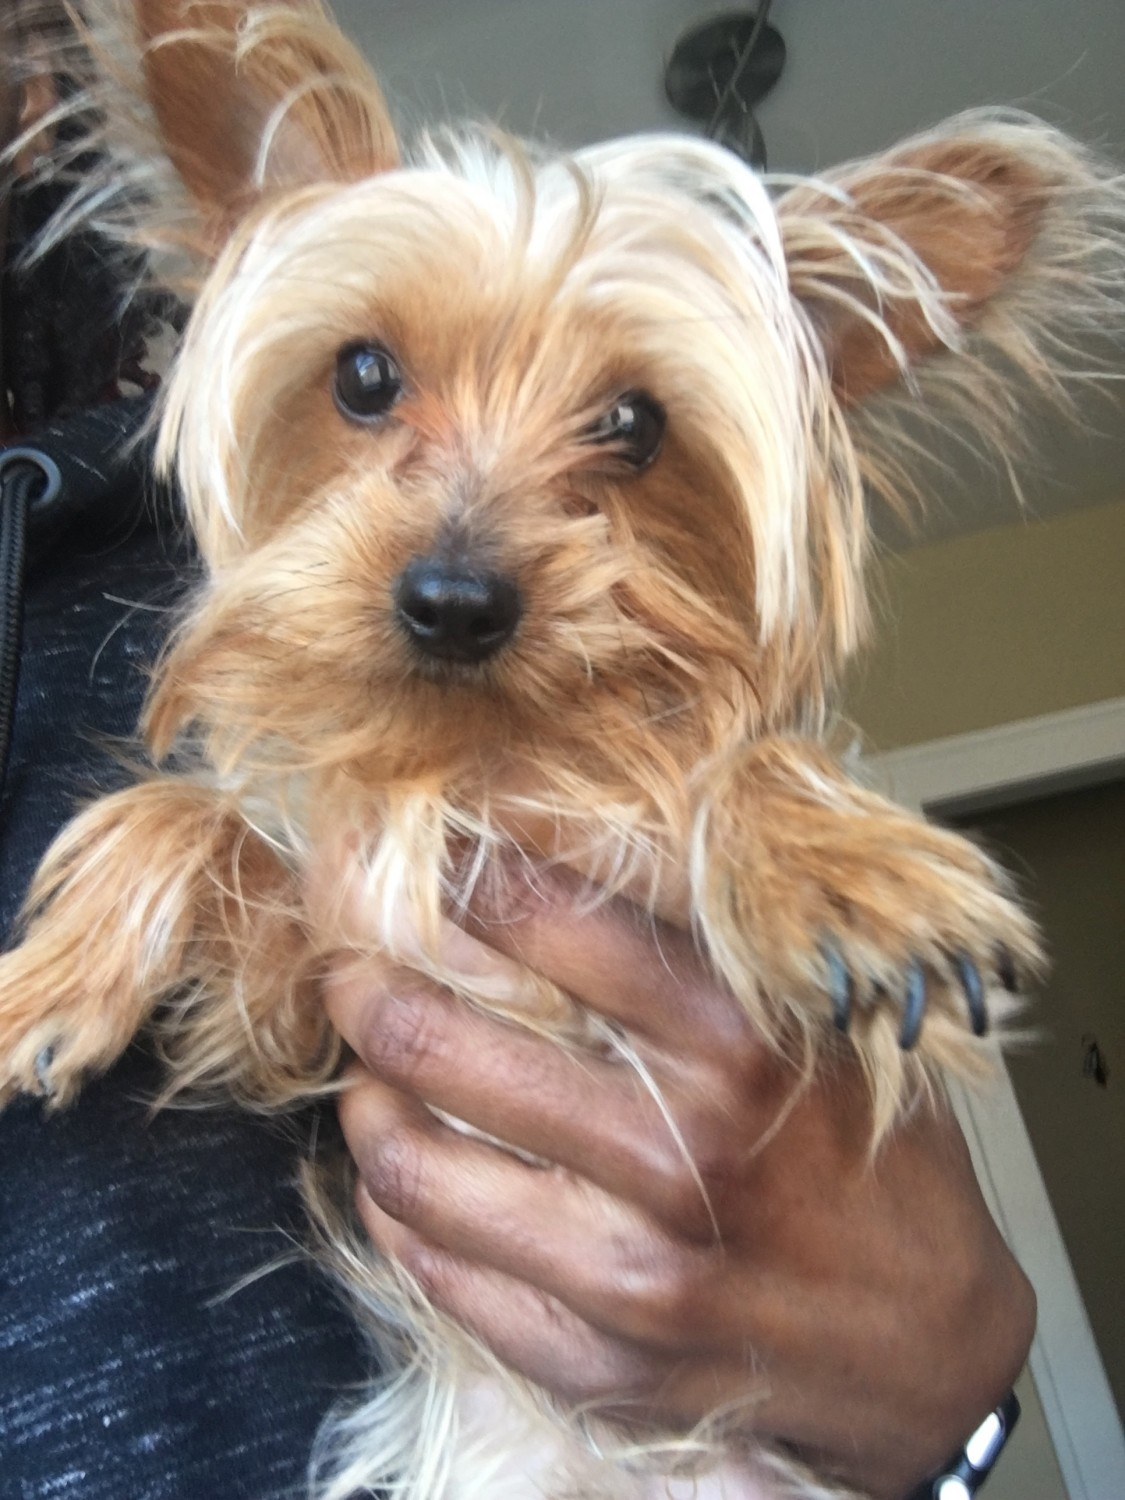 yorkie puppies for sale in michigan yorkshire terrier puppies for sale river rouge mi 195211 137